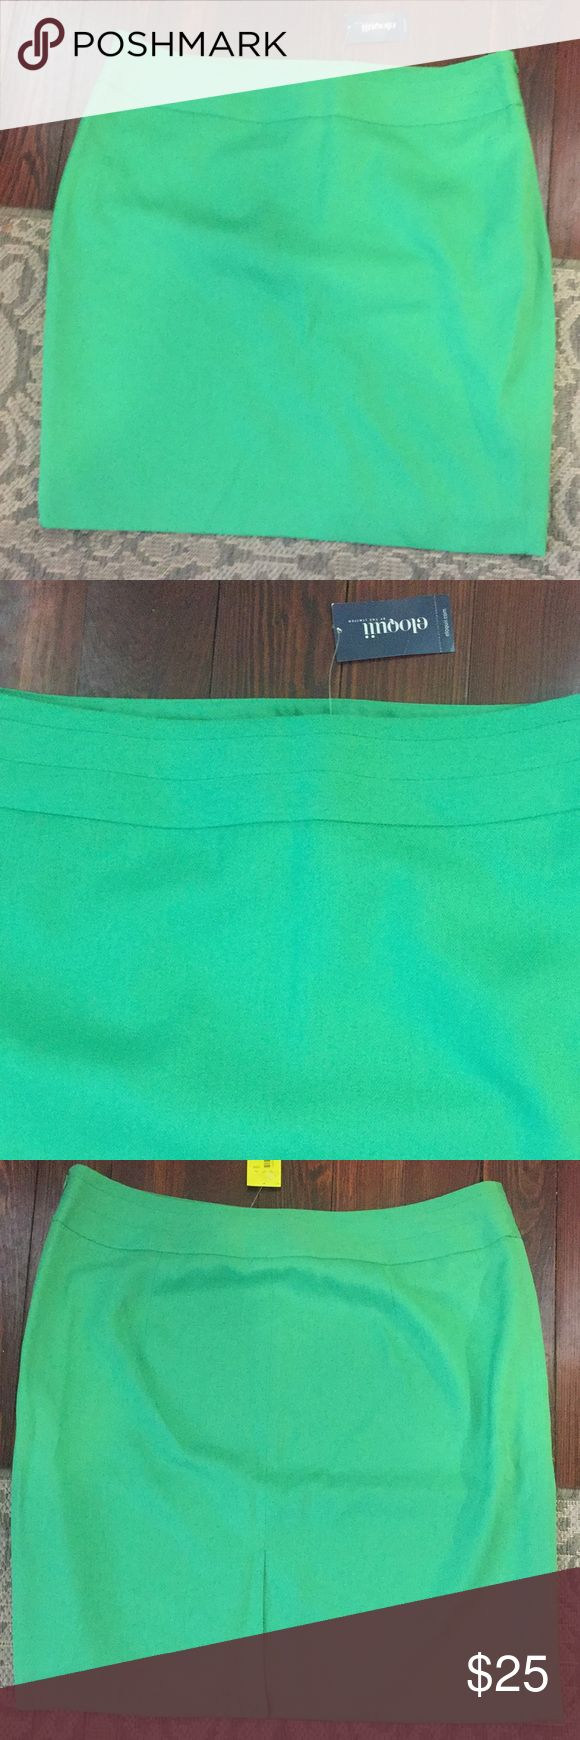 Bright Green Pencil Skirt Bright green pencil skirt, fully lined, with side zipper and kick vent in back. NWT! Waist measures approximately 20 inches flat and length is approximately 21.5 inches. Made of 100% polyester. No stretch. Eloquii Skirts Pencil